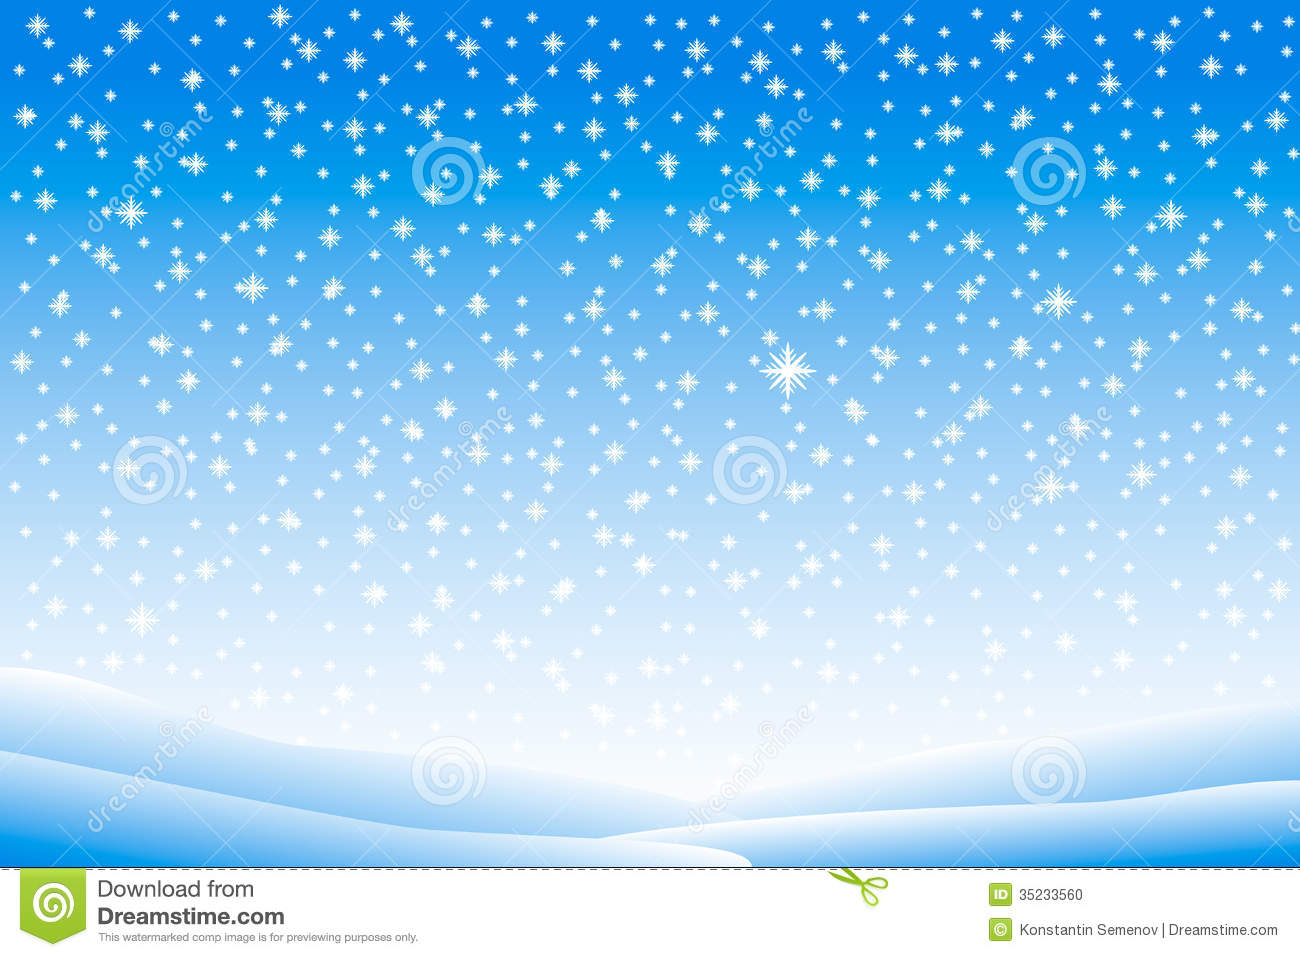 winter landscape with falling snow stock vector illustration of rh dreamstime com snow background clipart free snow falling background clipart